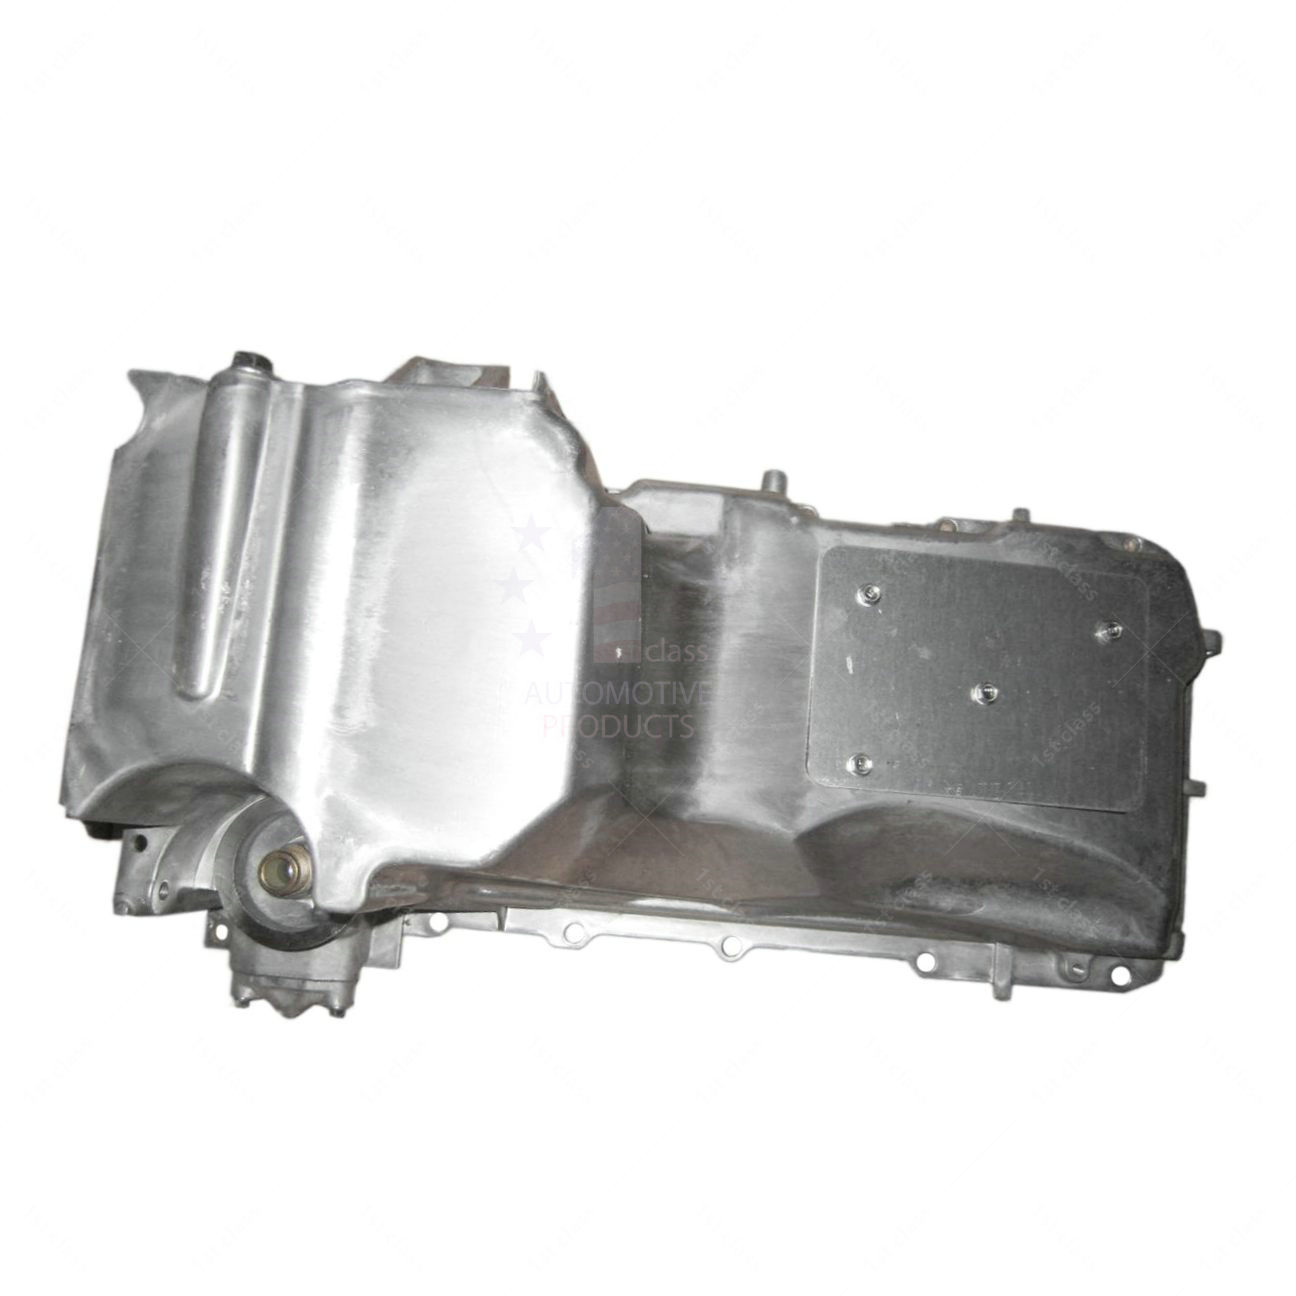 Engine Oil Pan For Workhorse Chevrolet GMC Cadillac V8 4.8//5.3//6.0//6.2L 264-480